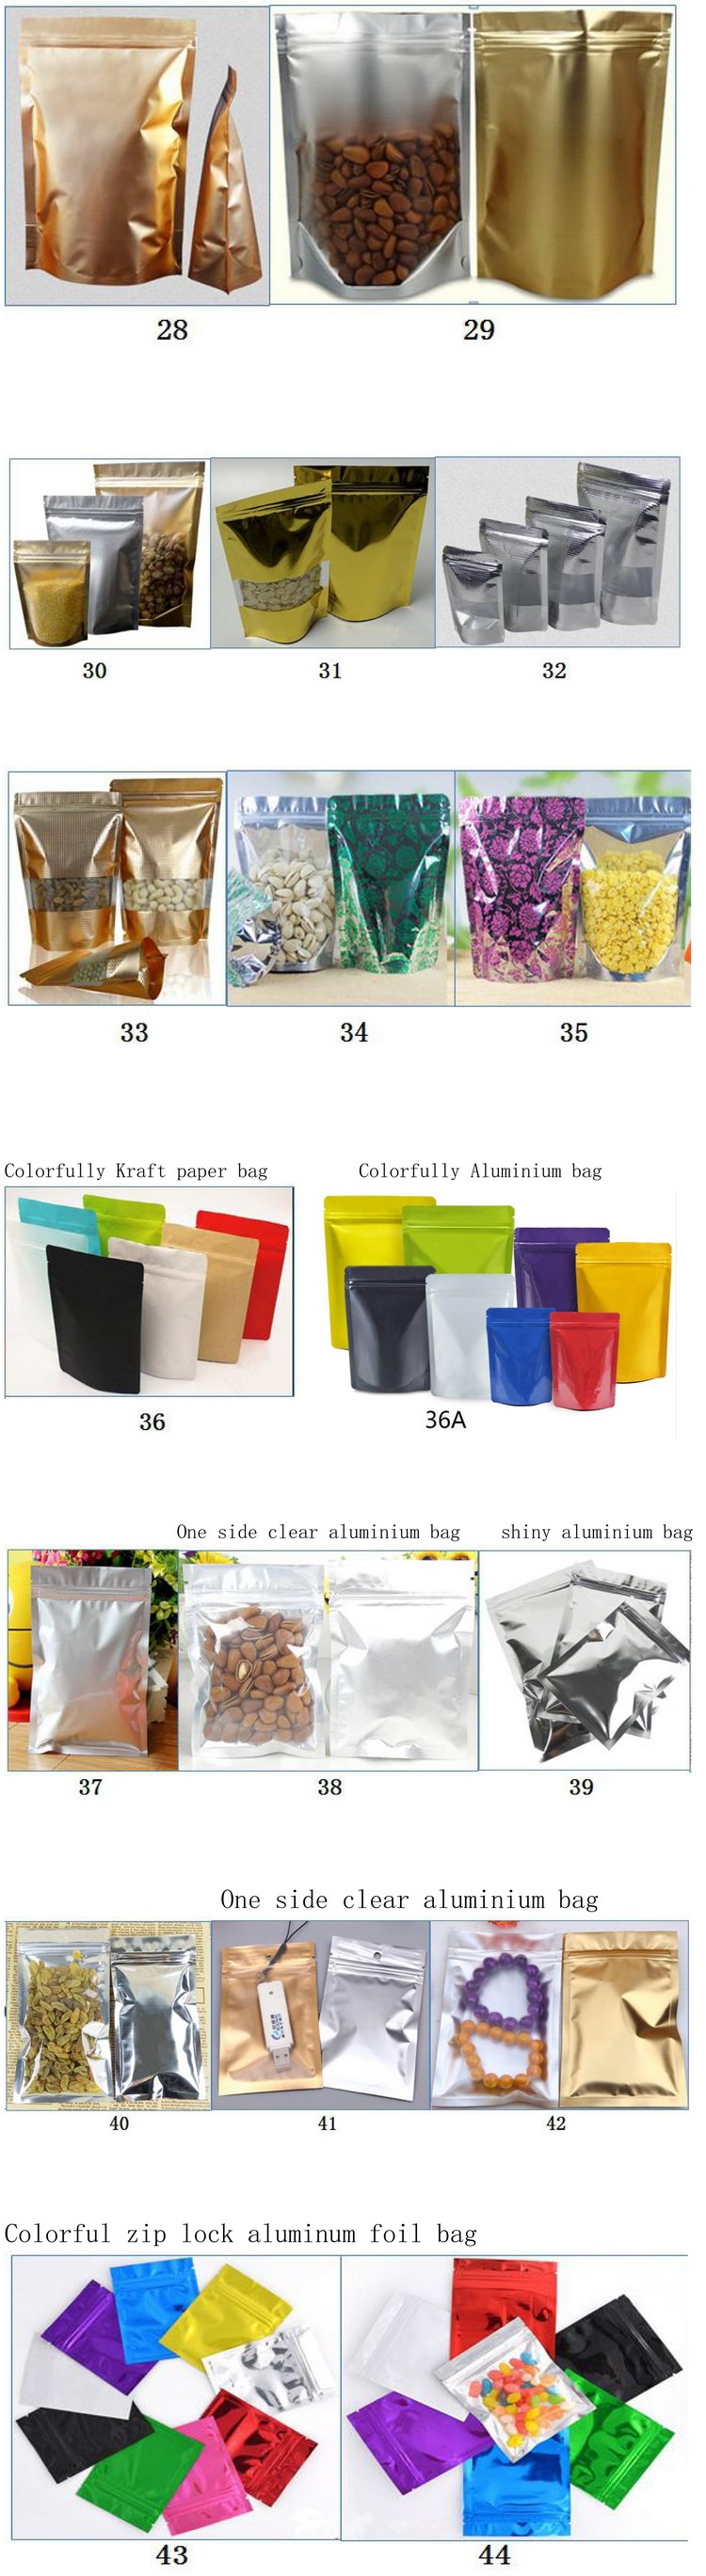 Stand Up Tea Packaging Bags Laminated Aluminum Foil Packaging Bags